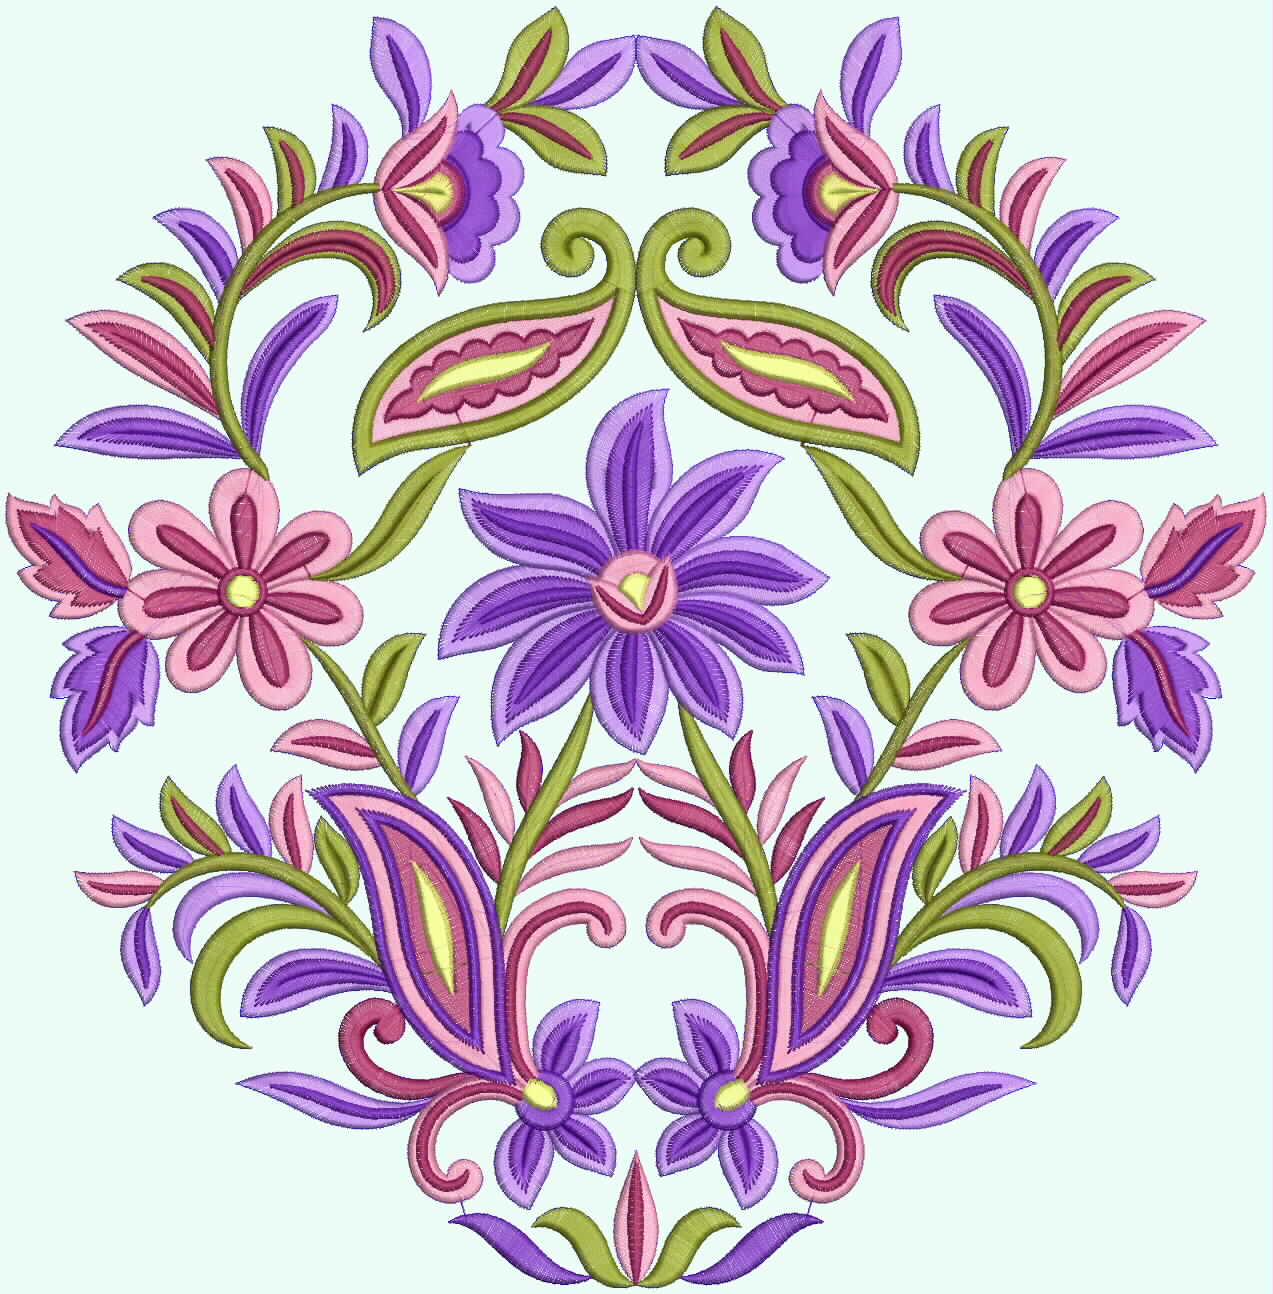 Embdesigntube patch for wedding gown designs